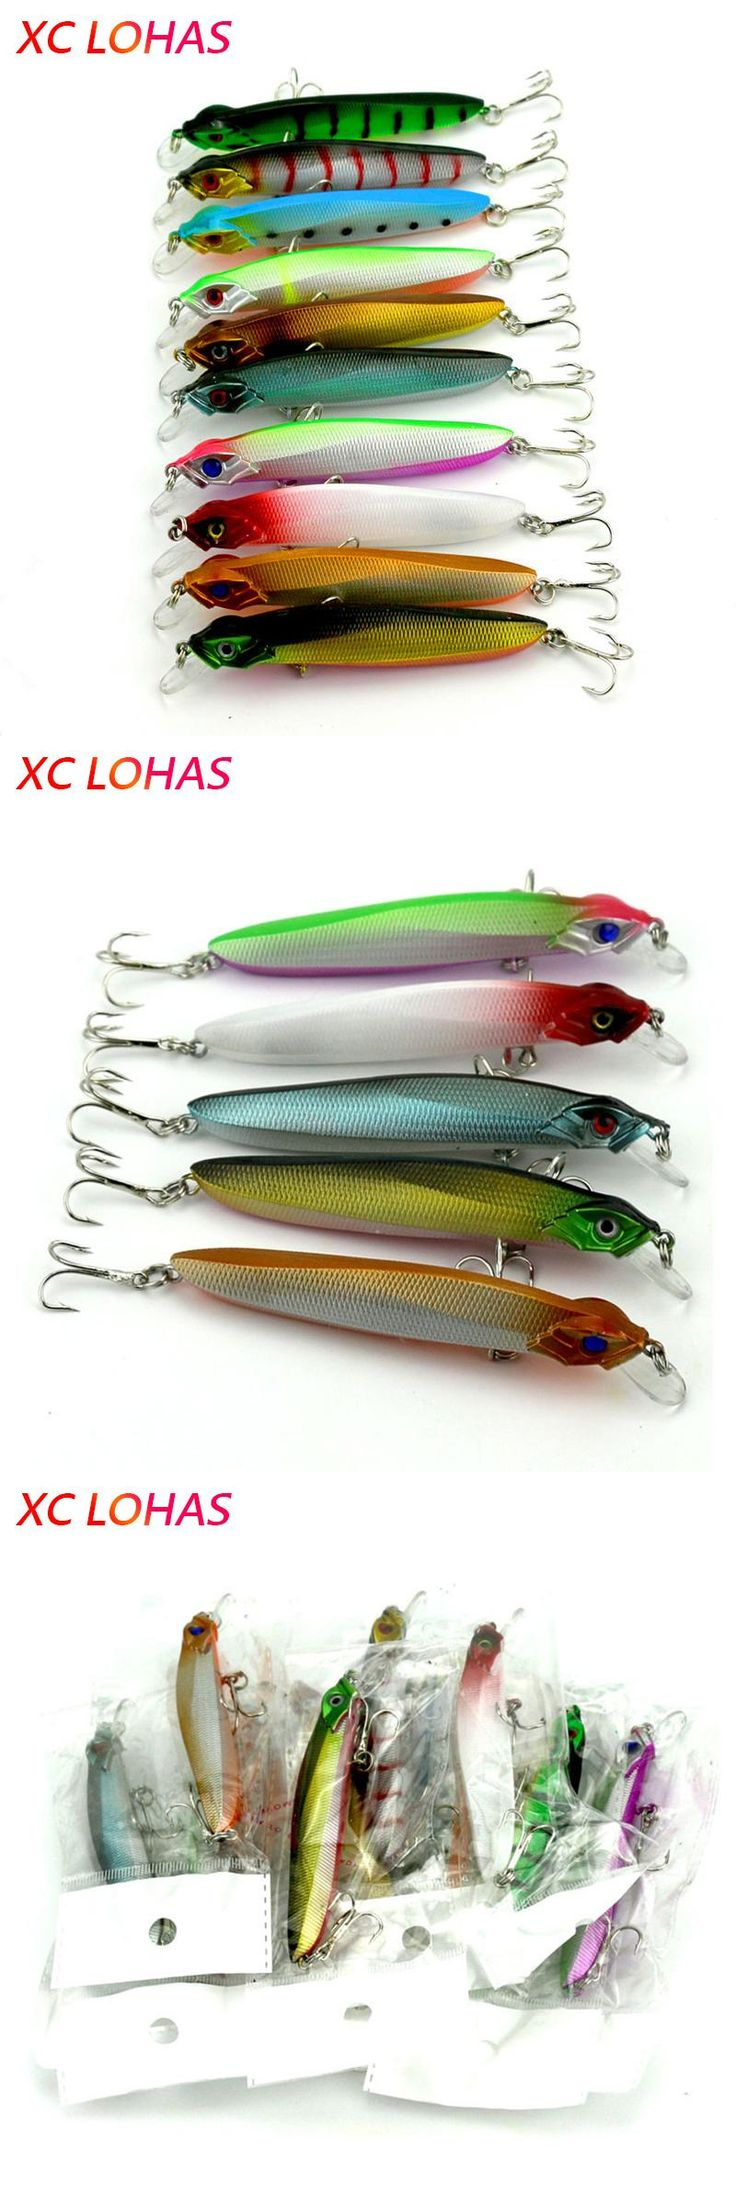 [Visit to Buy] Second half price! 10cm 7.9g Best Fishing Lure Reflective Minnow Crankbait Shining Hard Plastic Artificial Lures Bait  MI065 #Advertisement